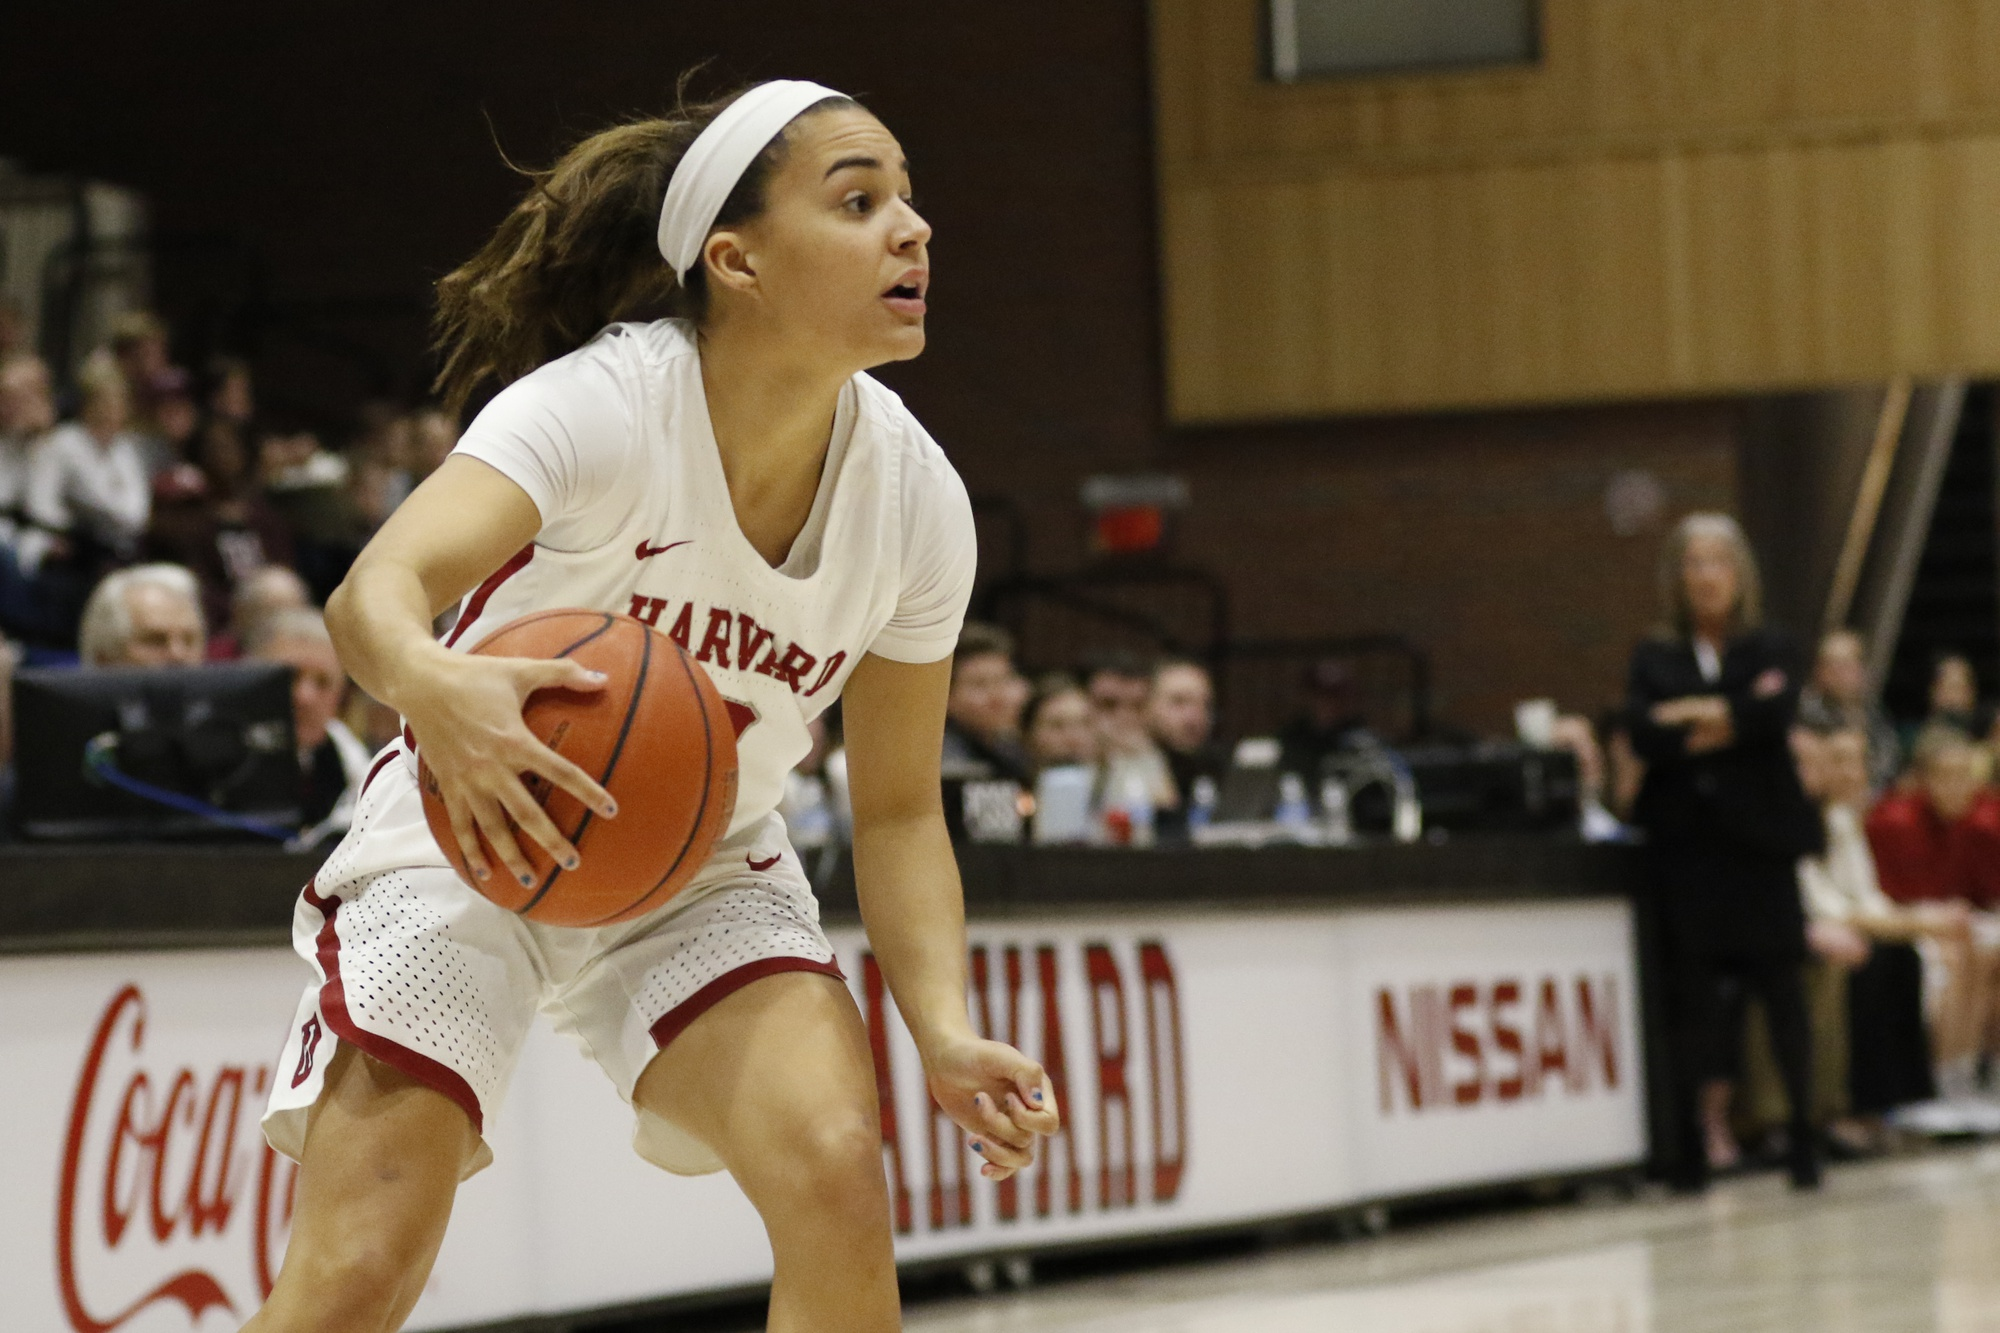 Katie Benzan will leave the comforts of her native Massachusetts to play in The Lone Star State next season.